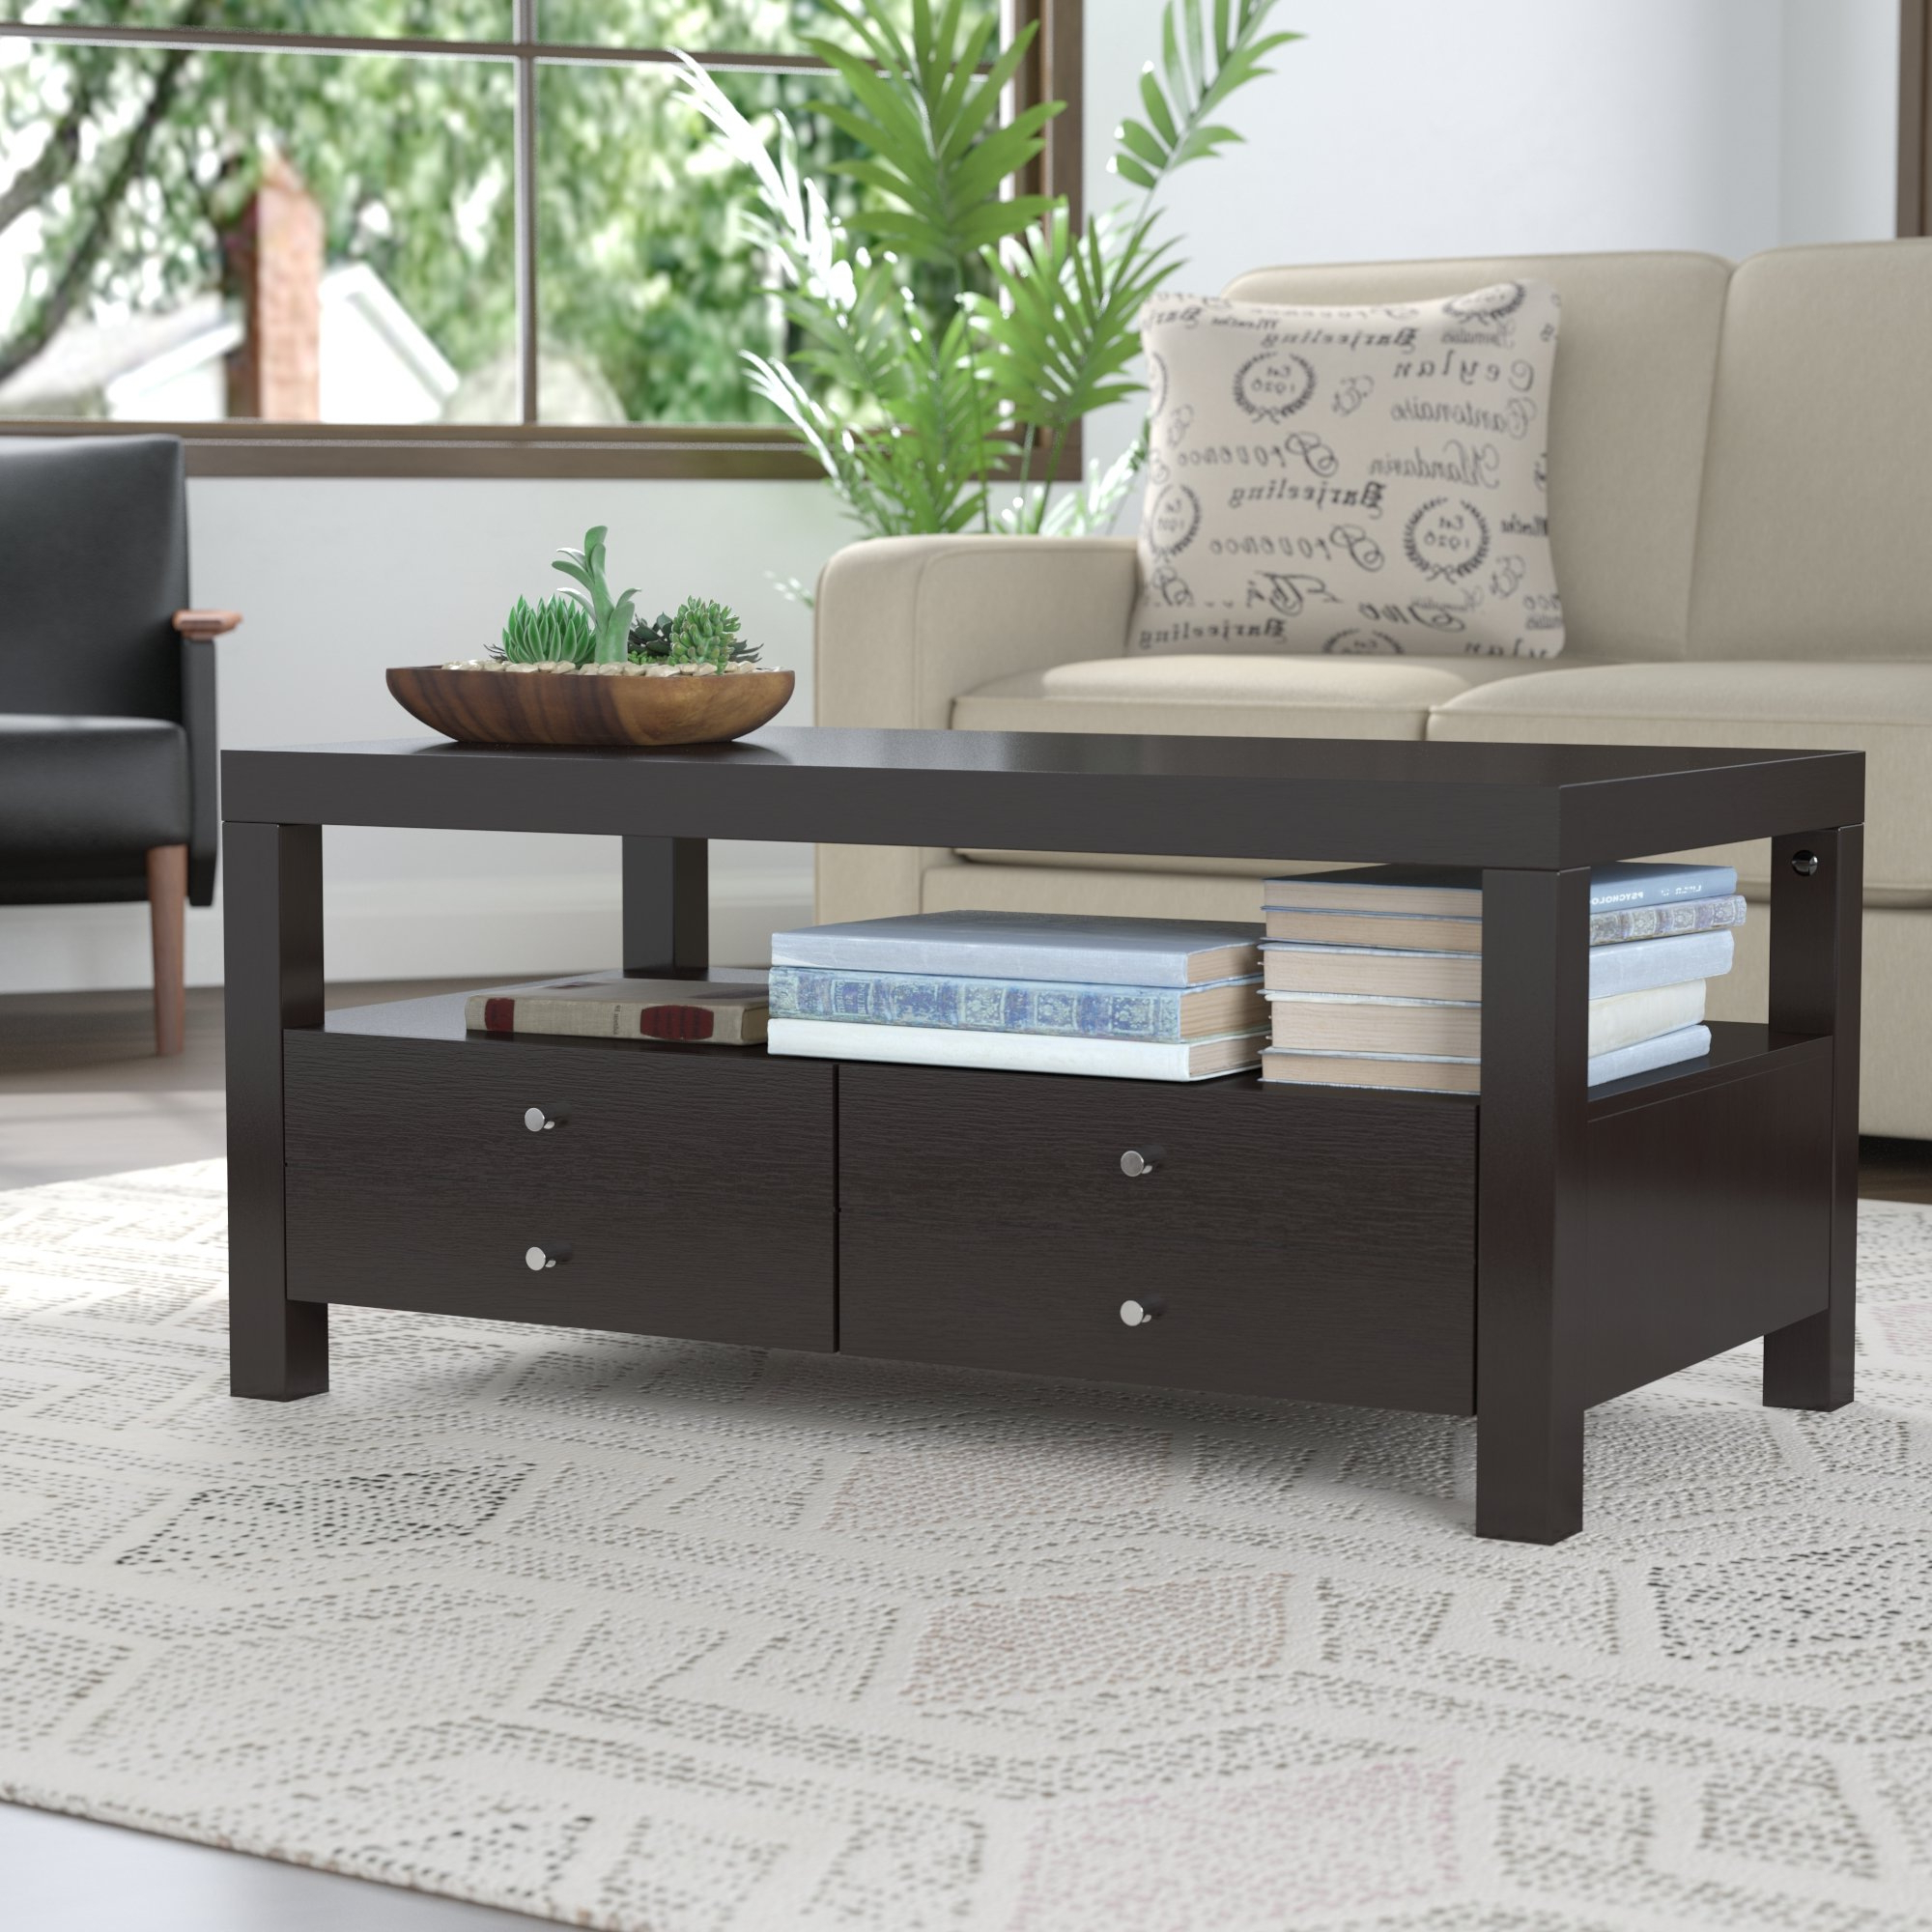 Wayfair With Regard To Large Scale Chinese Farmhouse Coffee Tables (View 16 of 20)